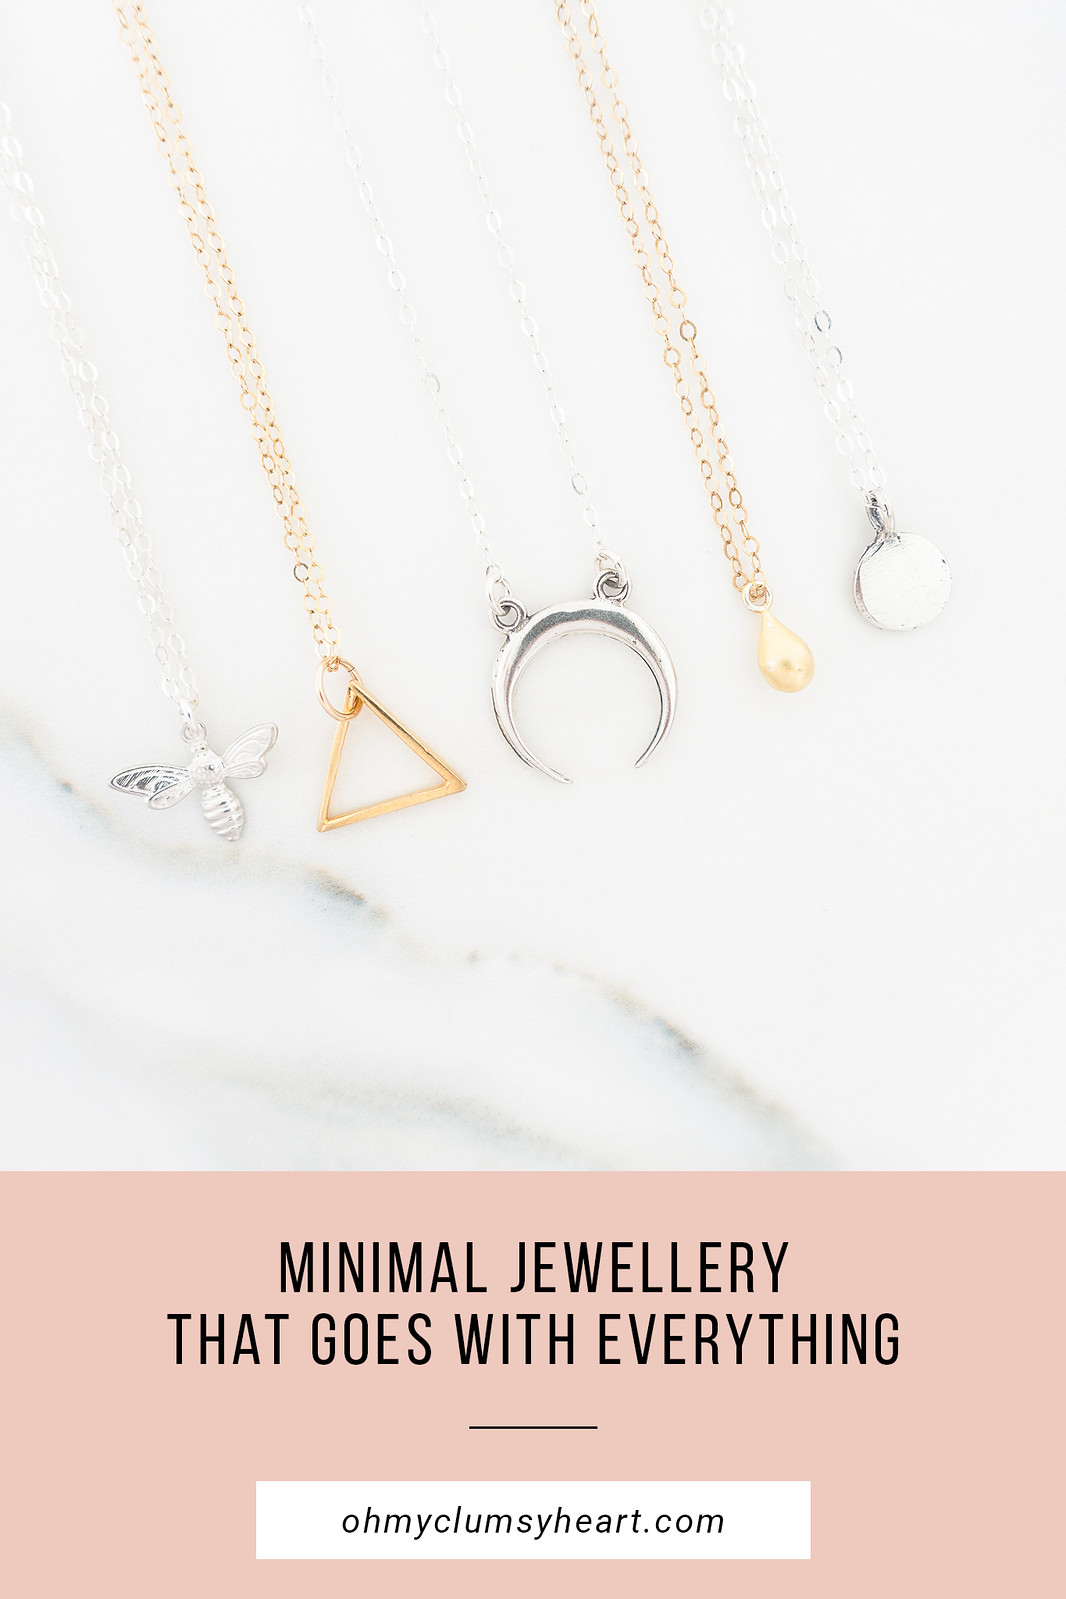 Minimal Jewellery That Goes With Everything